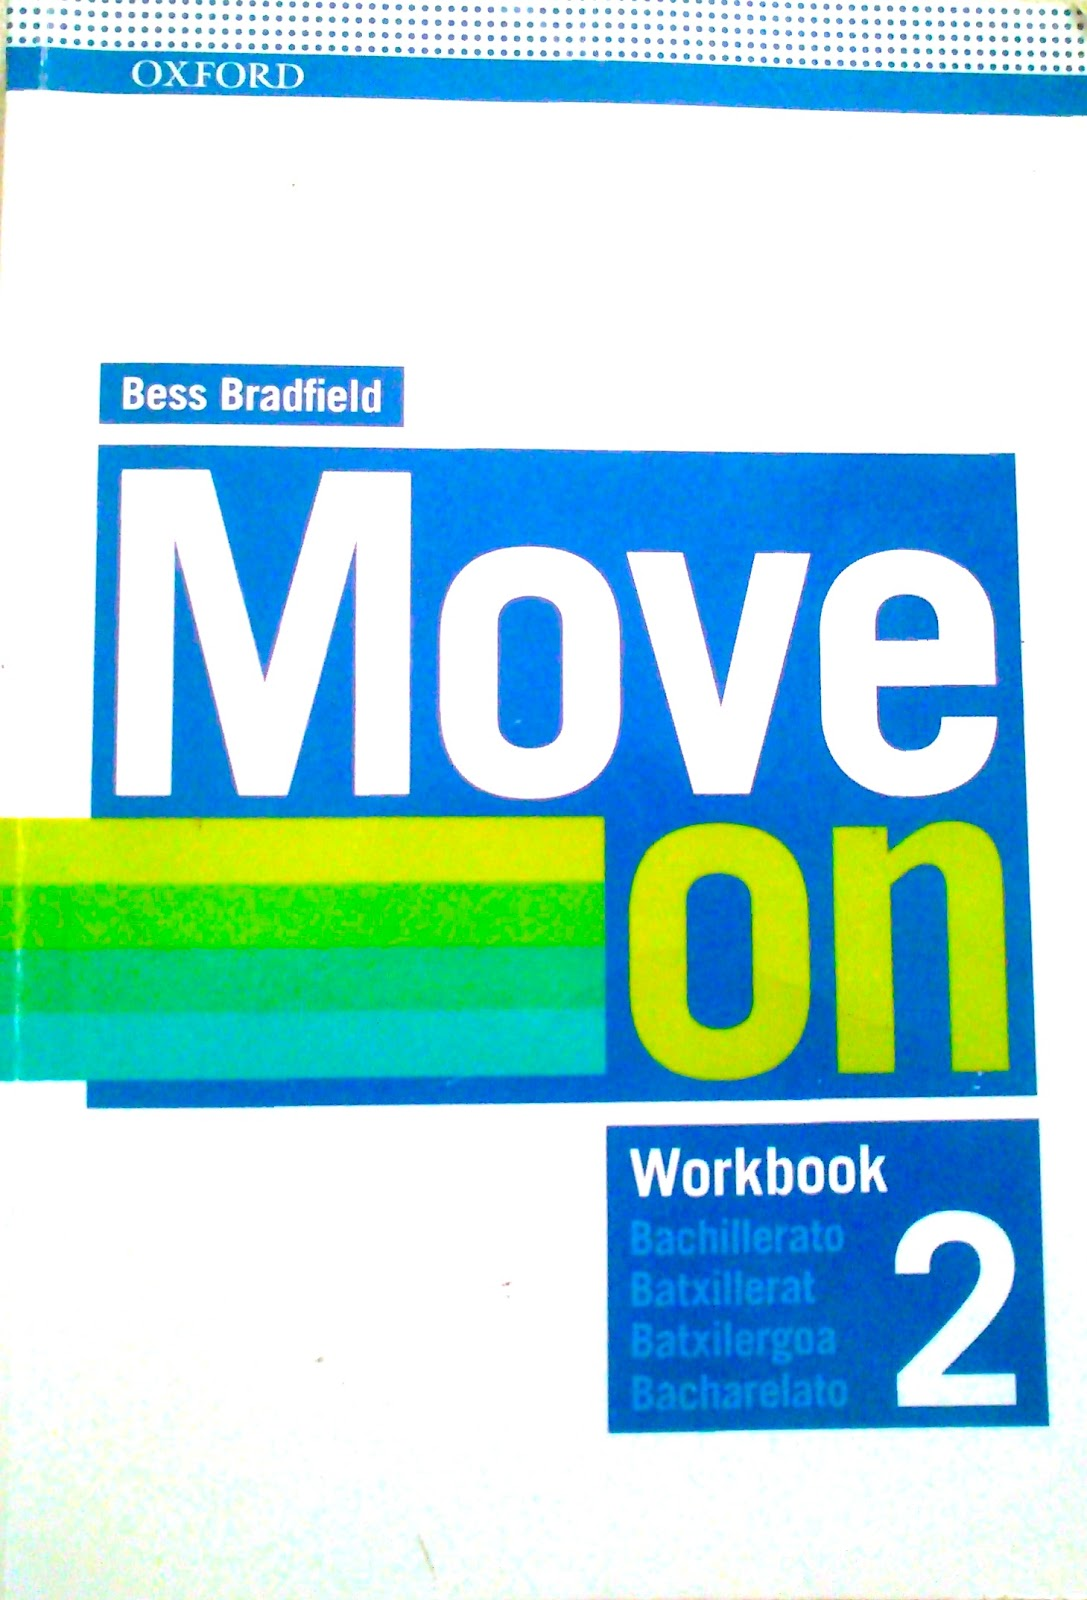 Editorial Oxford Libros Move On 2 Workbook Editorial Oxford Ref.03 | Libros